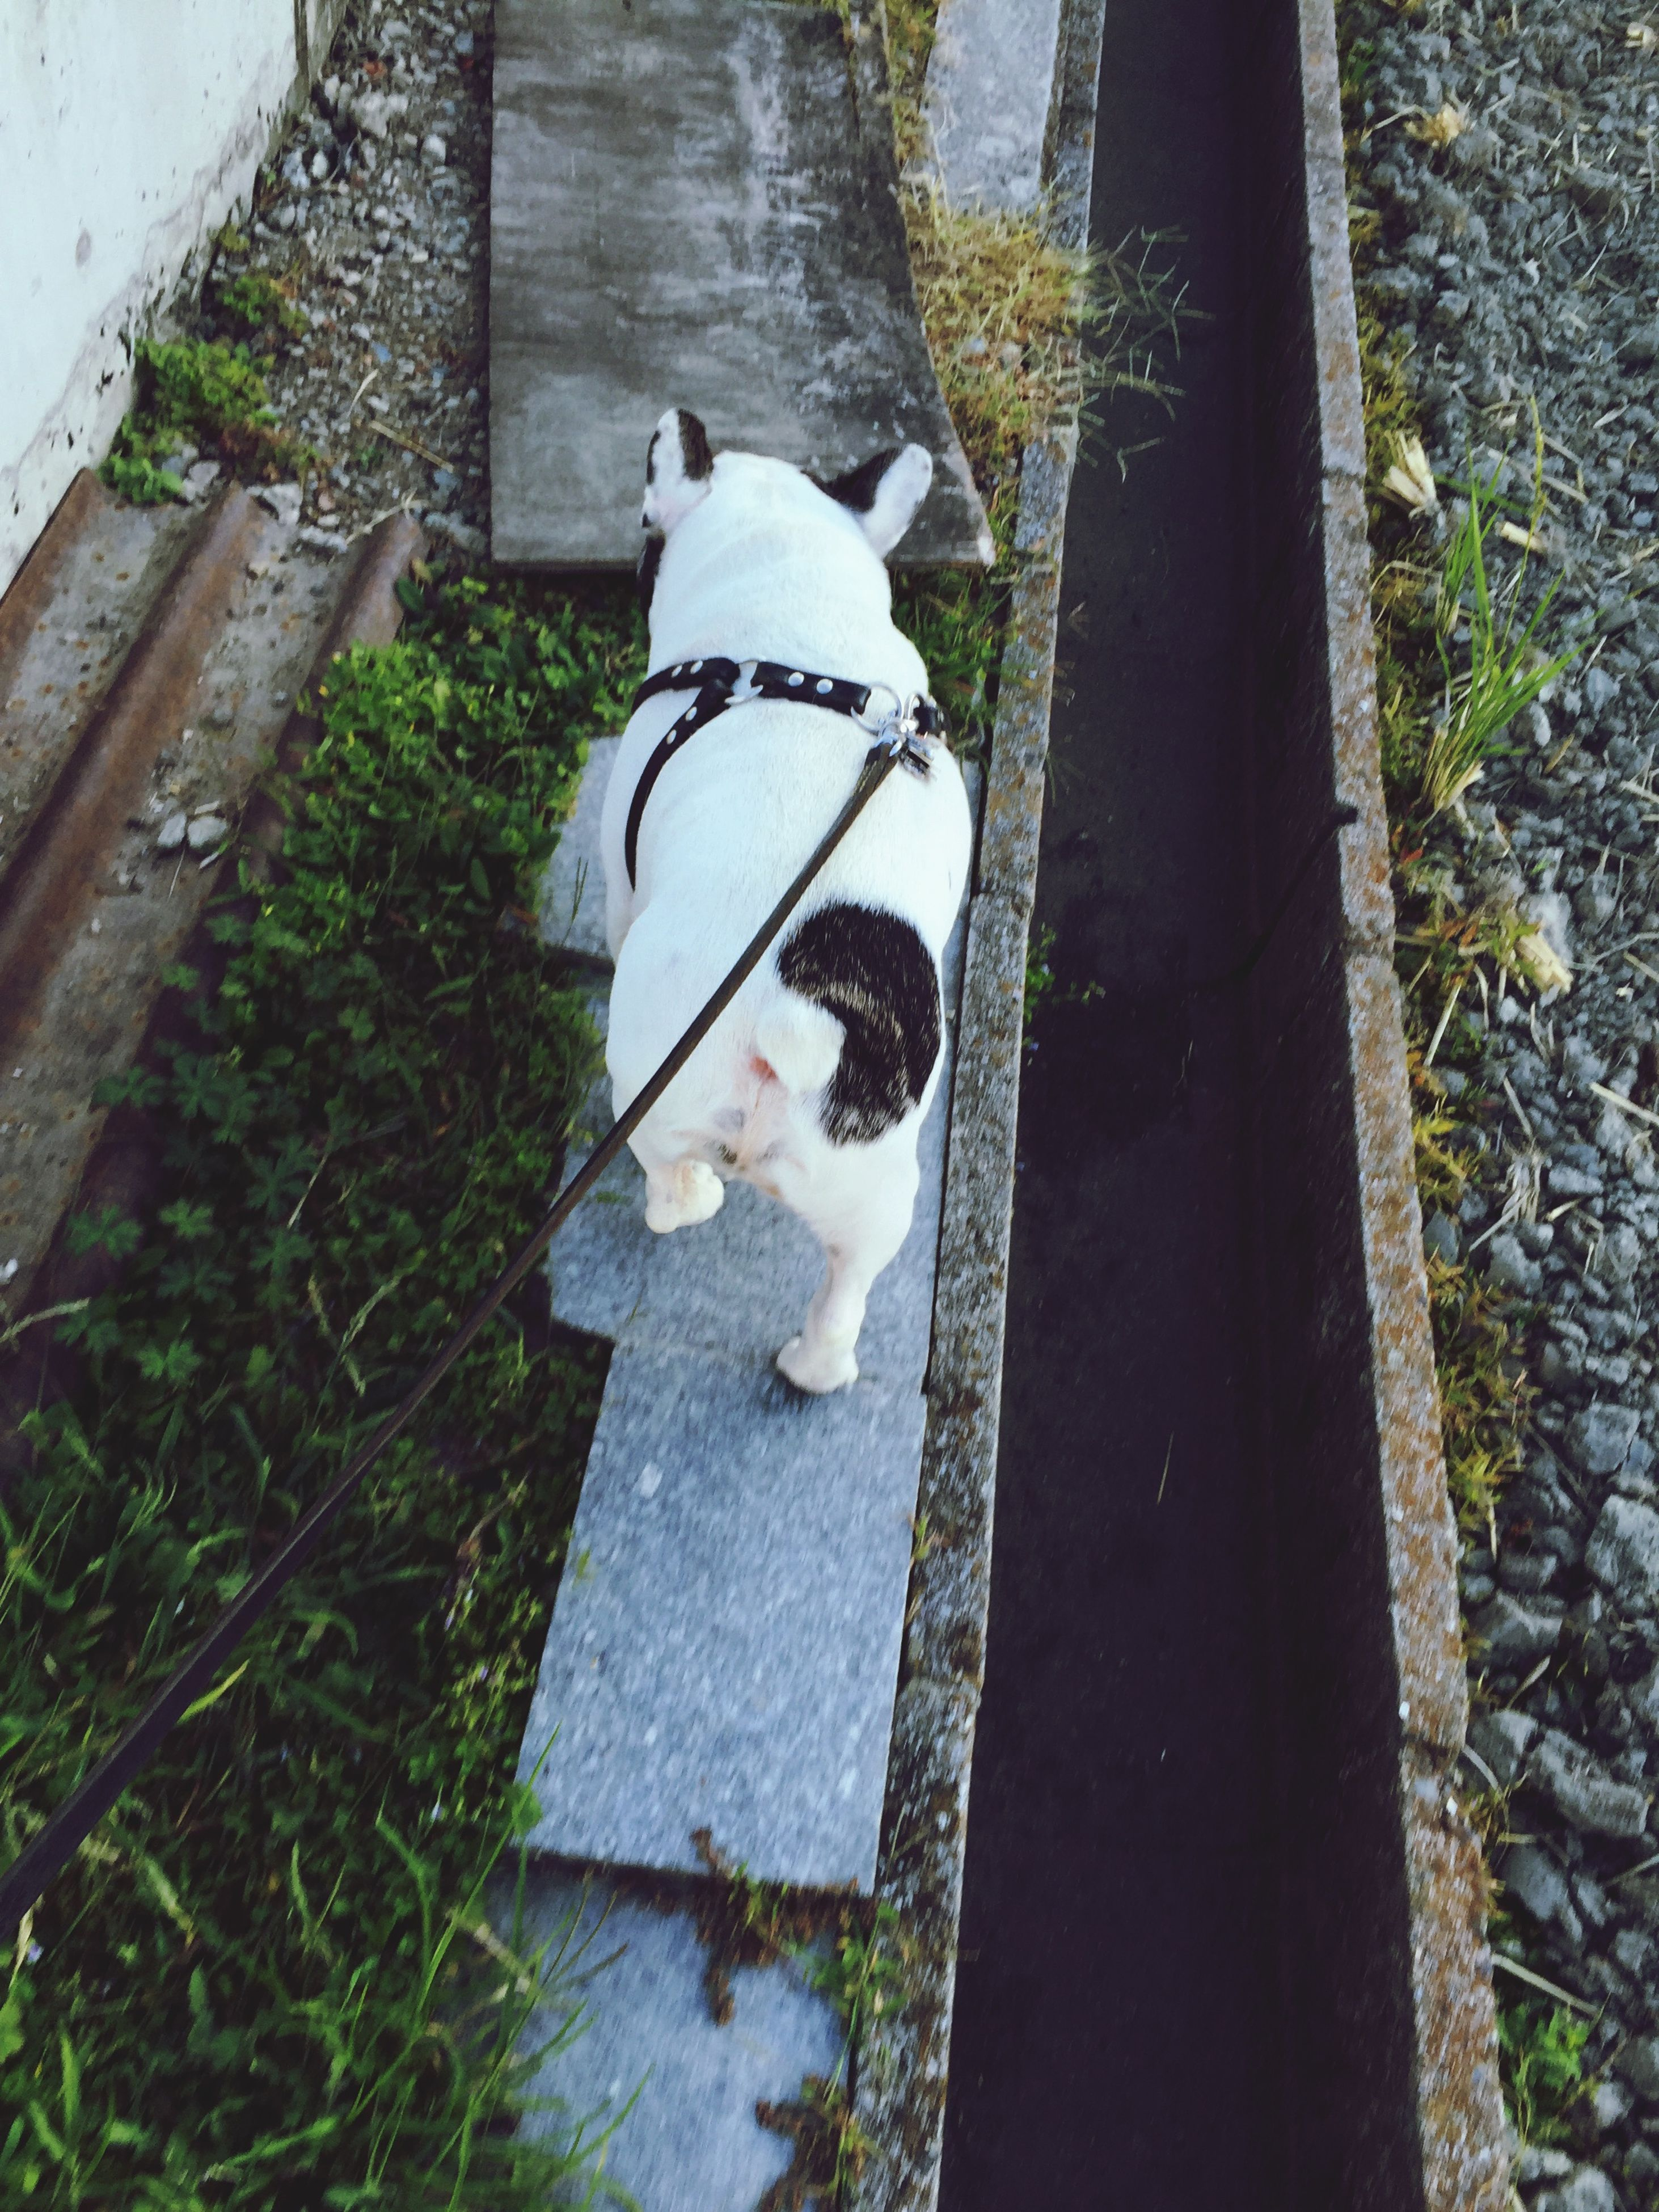 dog, pets, one animal, domestic animals, animal themes, high angle view, mammal, day, outdoors, sitting, standing, one person, full length, reflection, portrait, street, looking at camera, black color, built structure